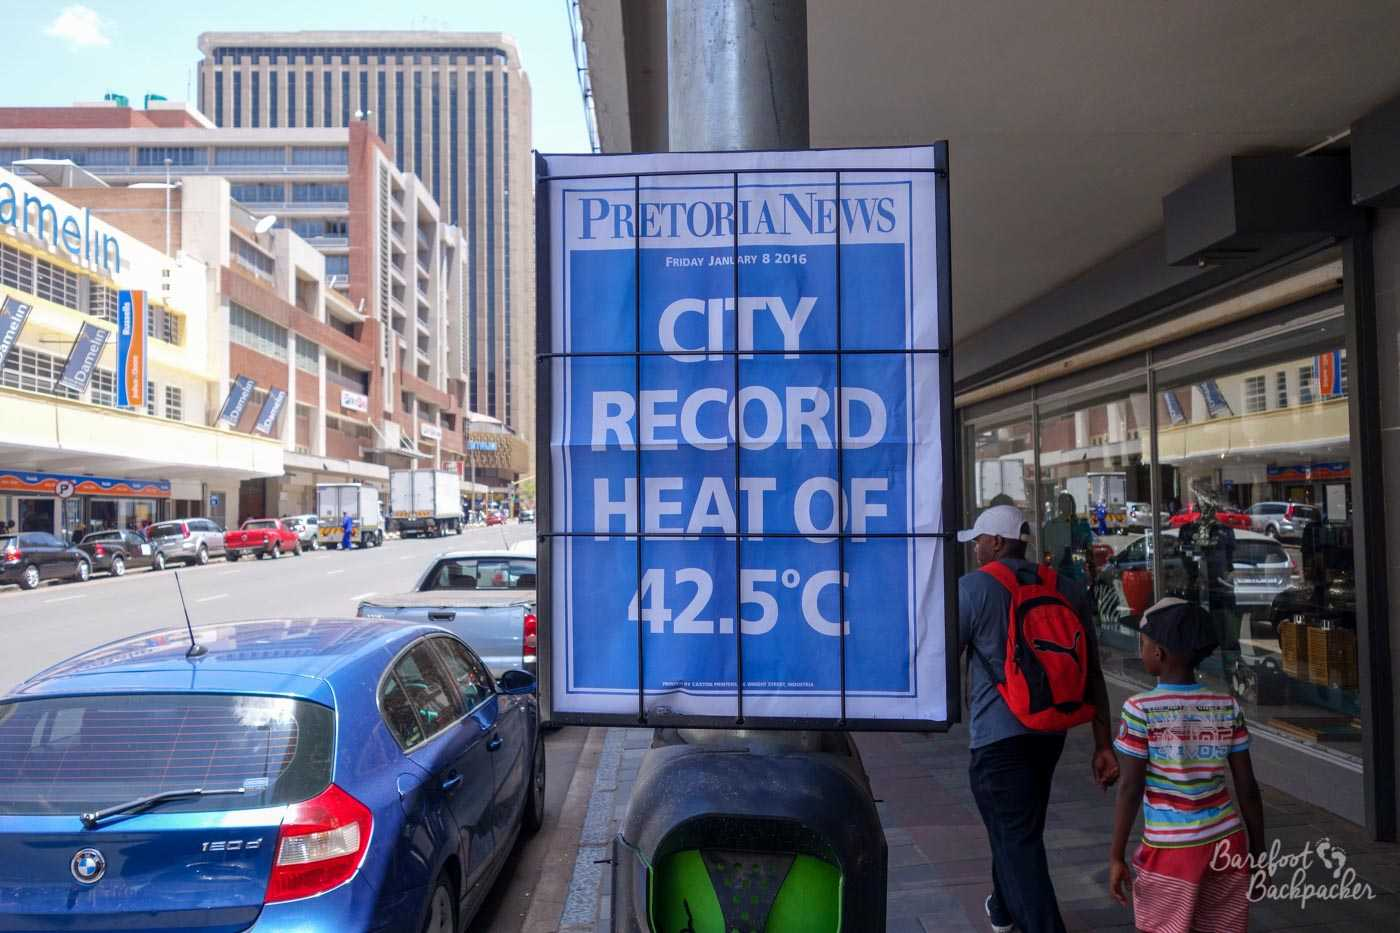 Poster in Pretoria highlighting the weather – 42°C!.